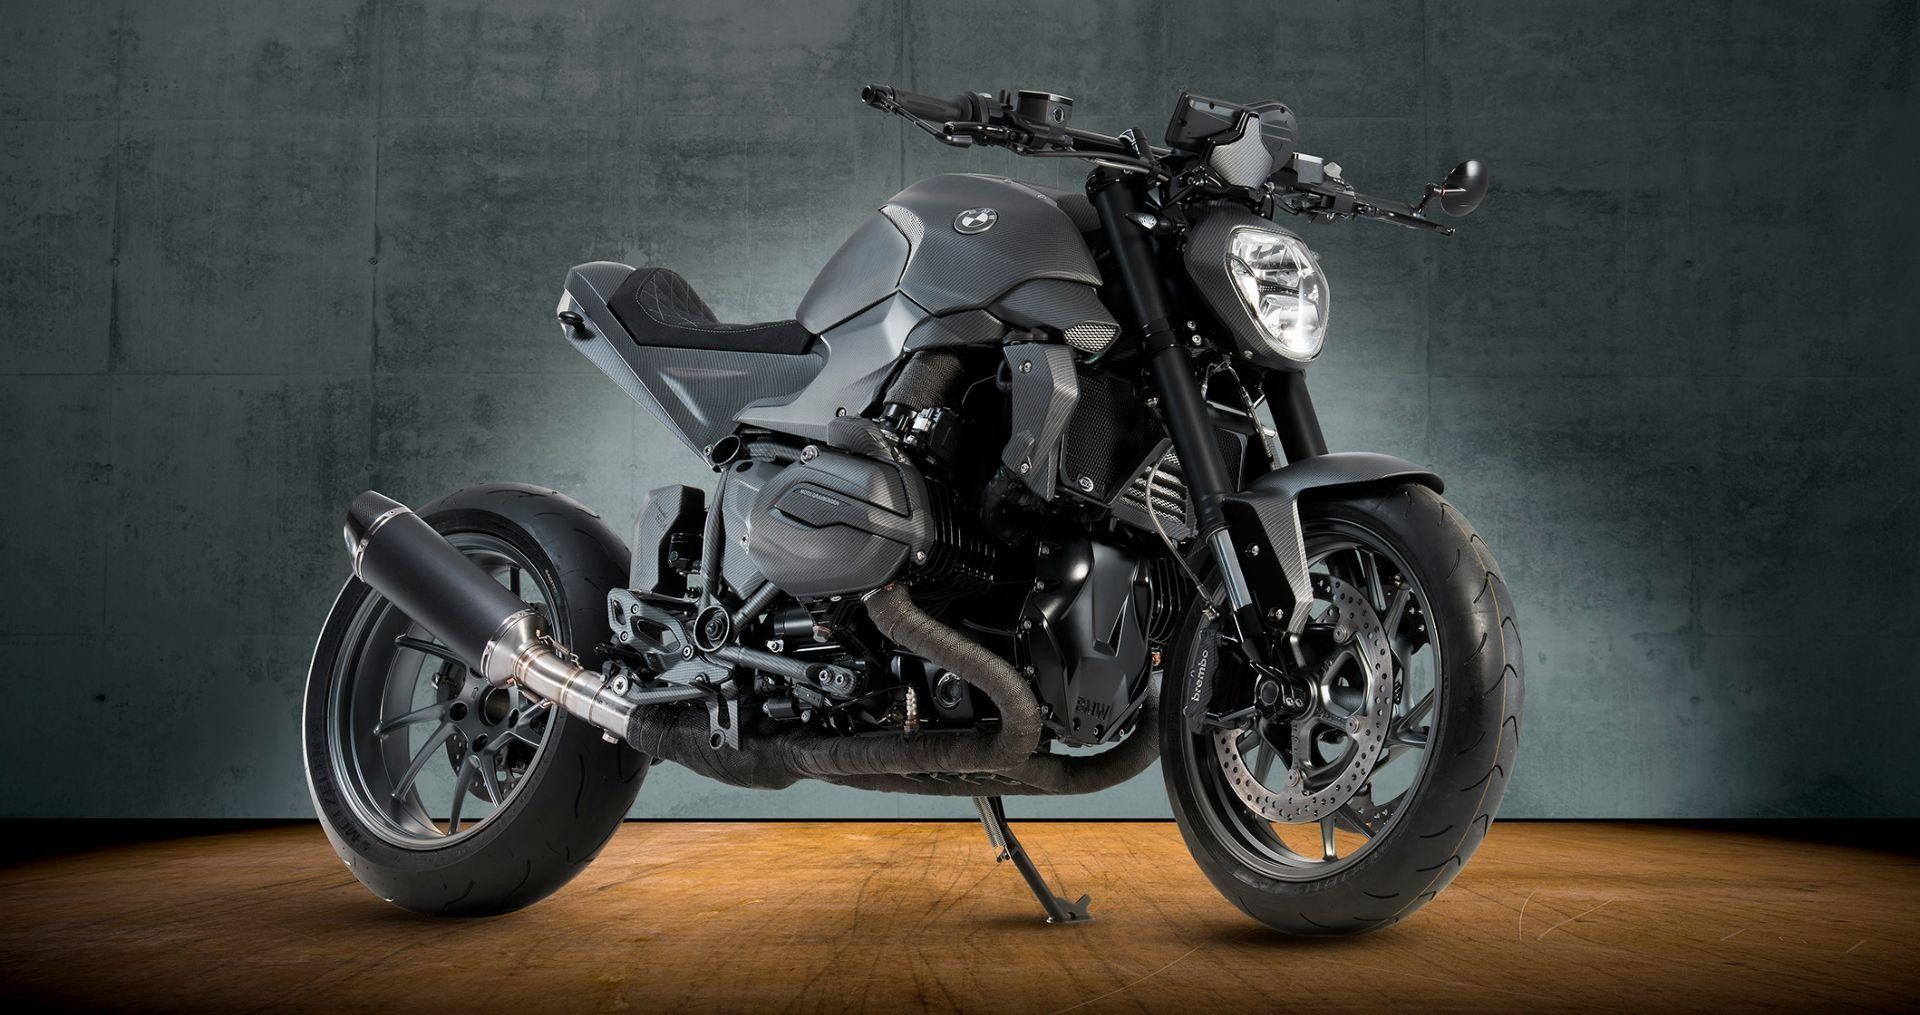 J114309-BMW-R-1200-R-ABS Extraordinary Bmw R 1200 R Street Fighter Cars Trend